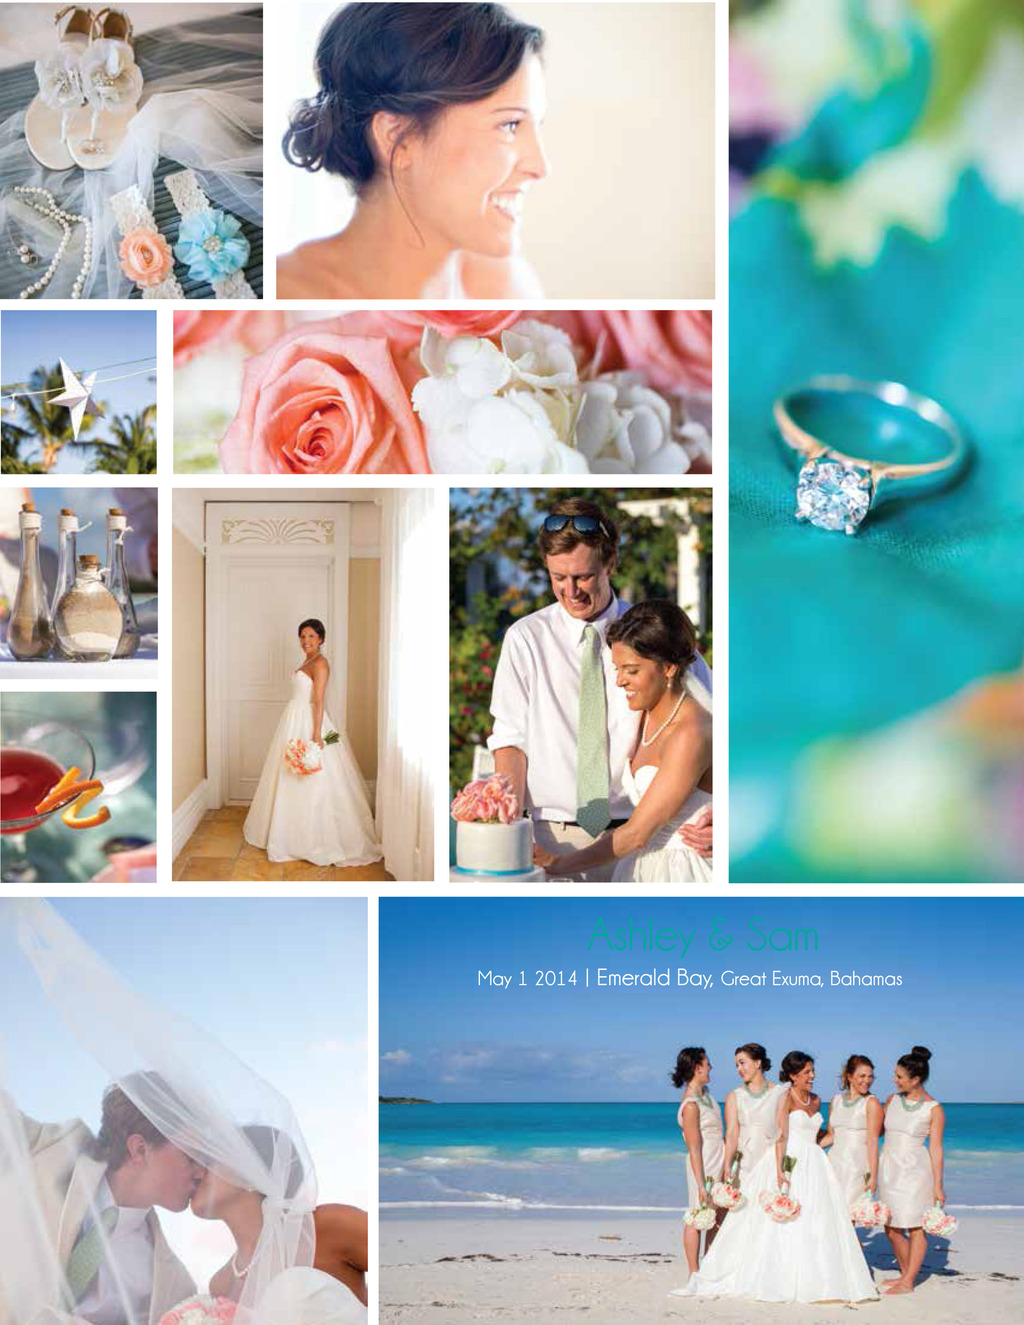 Dede Brown Wedding Photography - Packages and Pricing - 2015-12